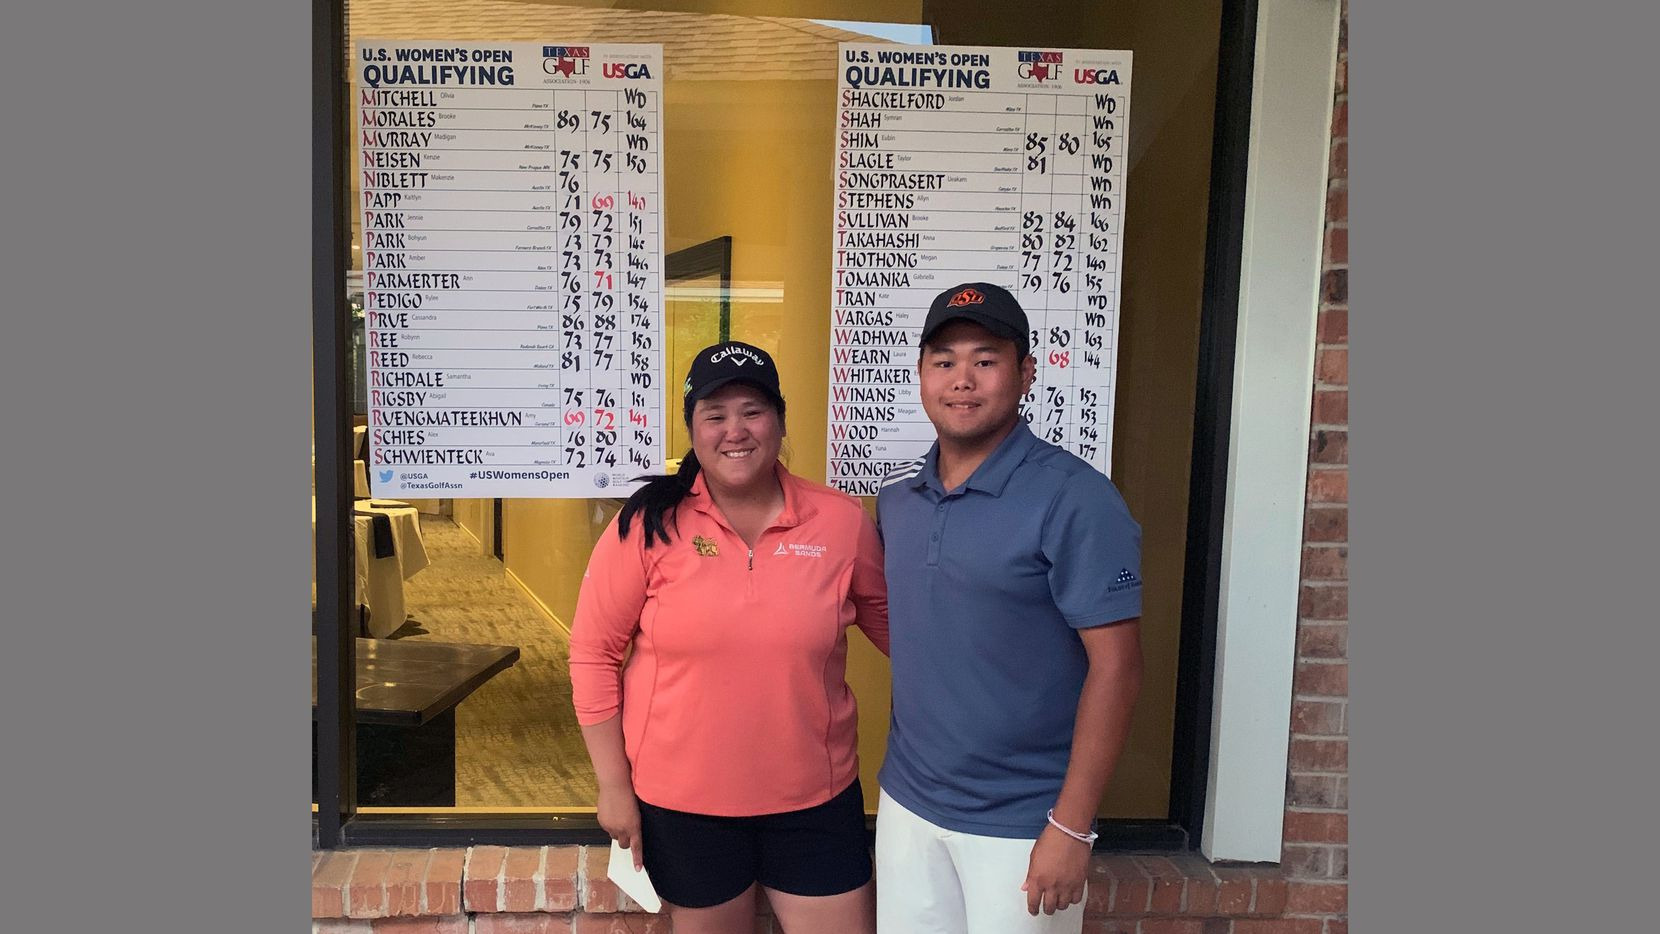 Ursuline golf coach Amy Ruengmateekhun (left) with her younger brother, Jamie, who served as her caddie when she qualified for the U.S. Women's Open on May 2.